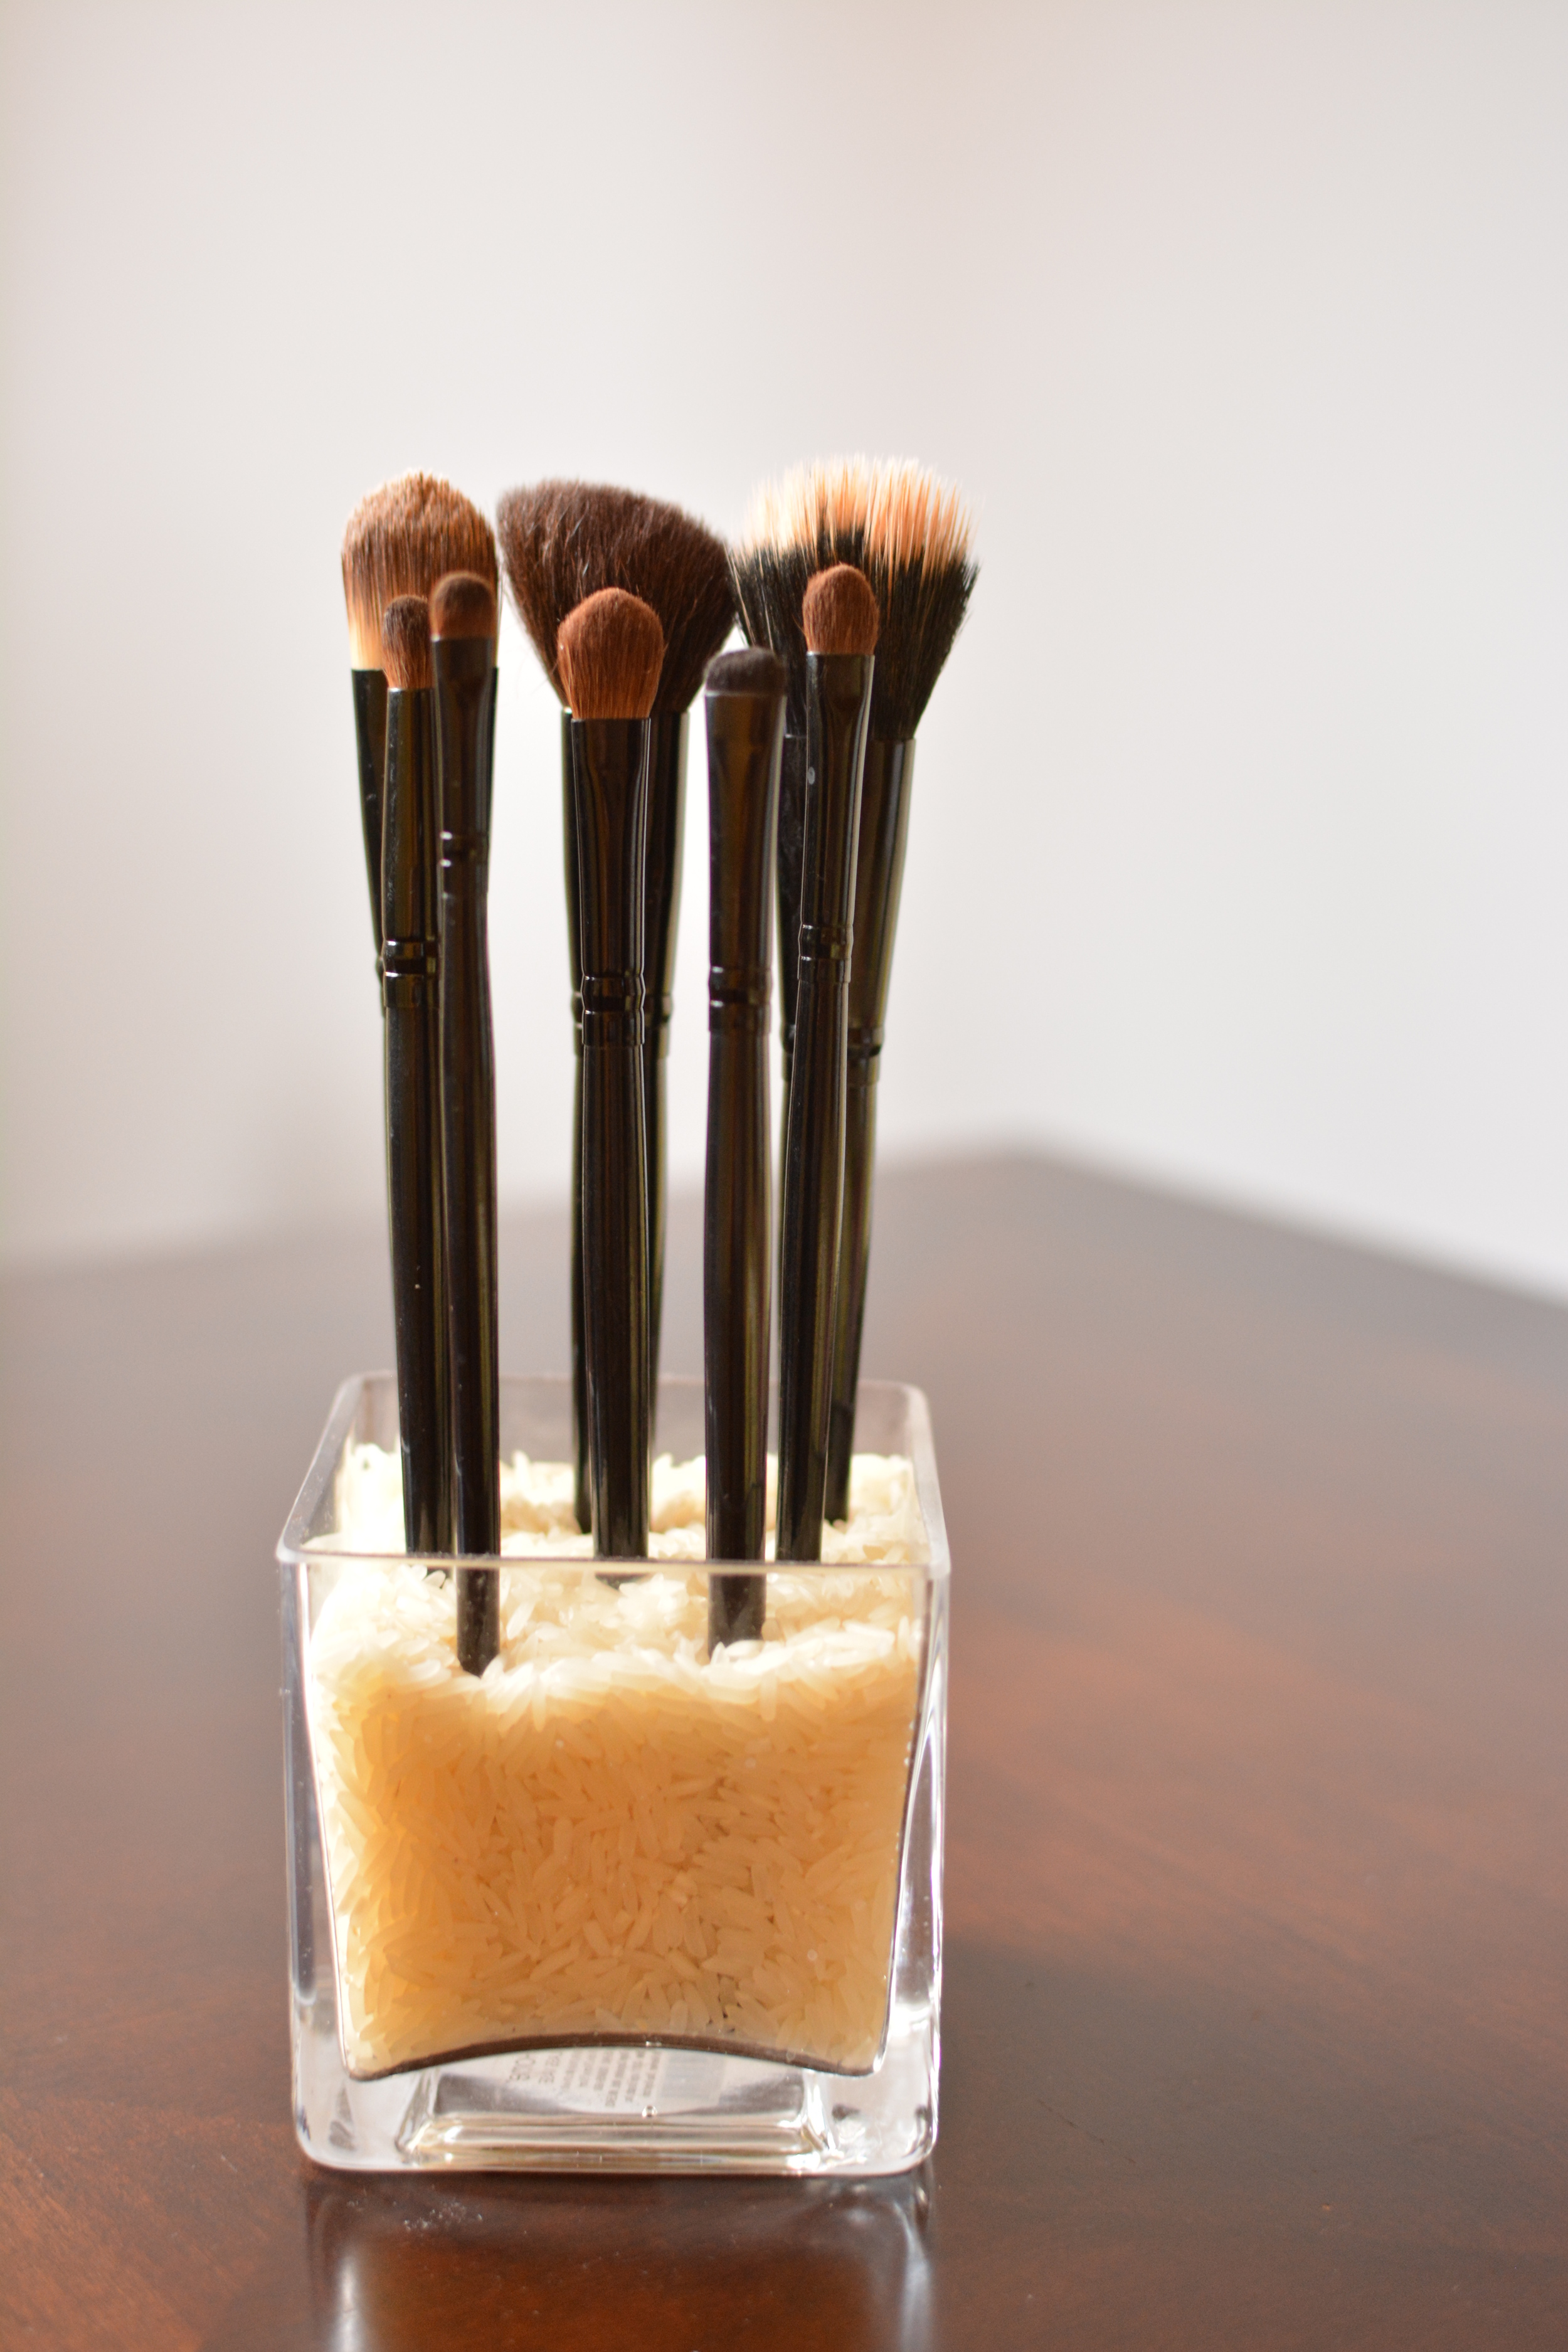 My every-day Coastal Scents brushes